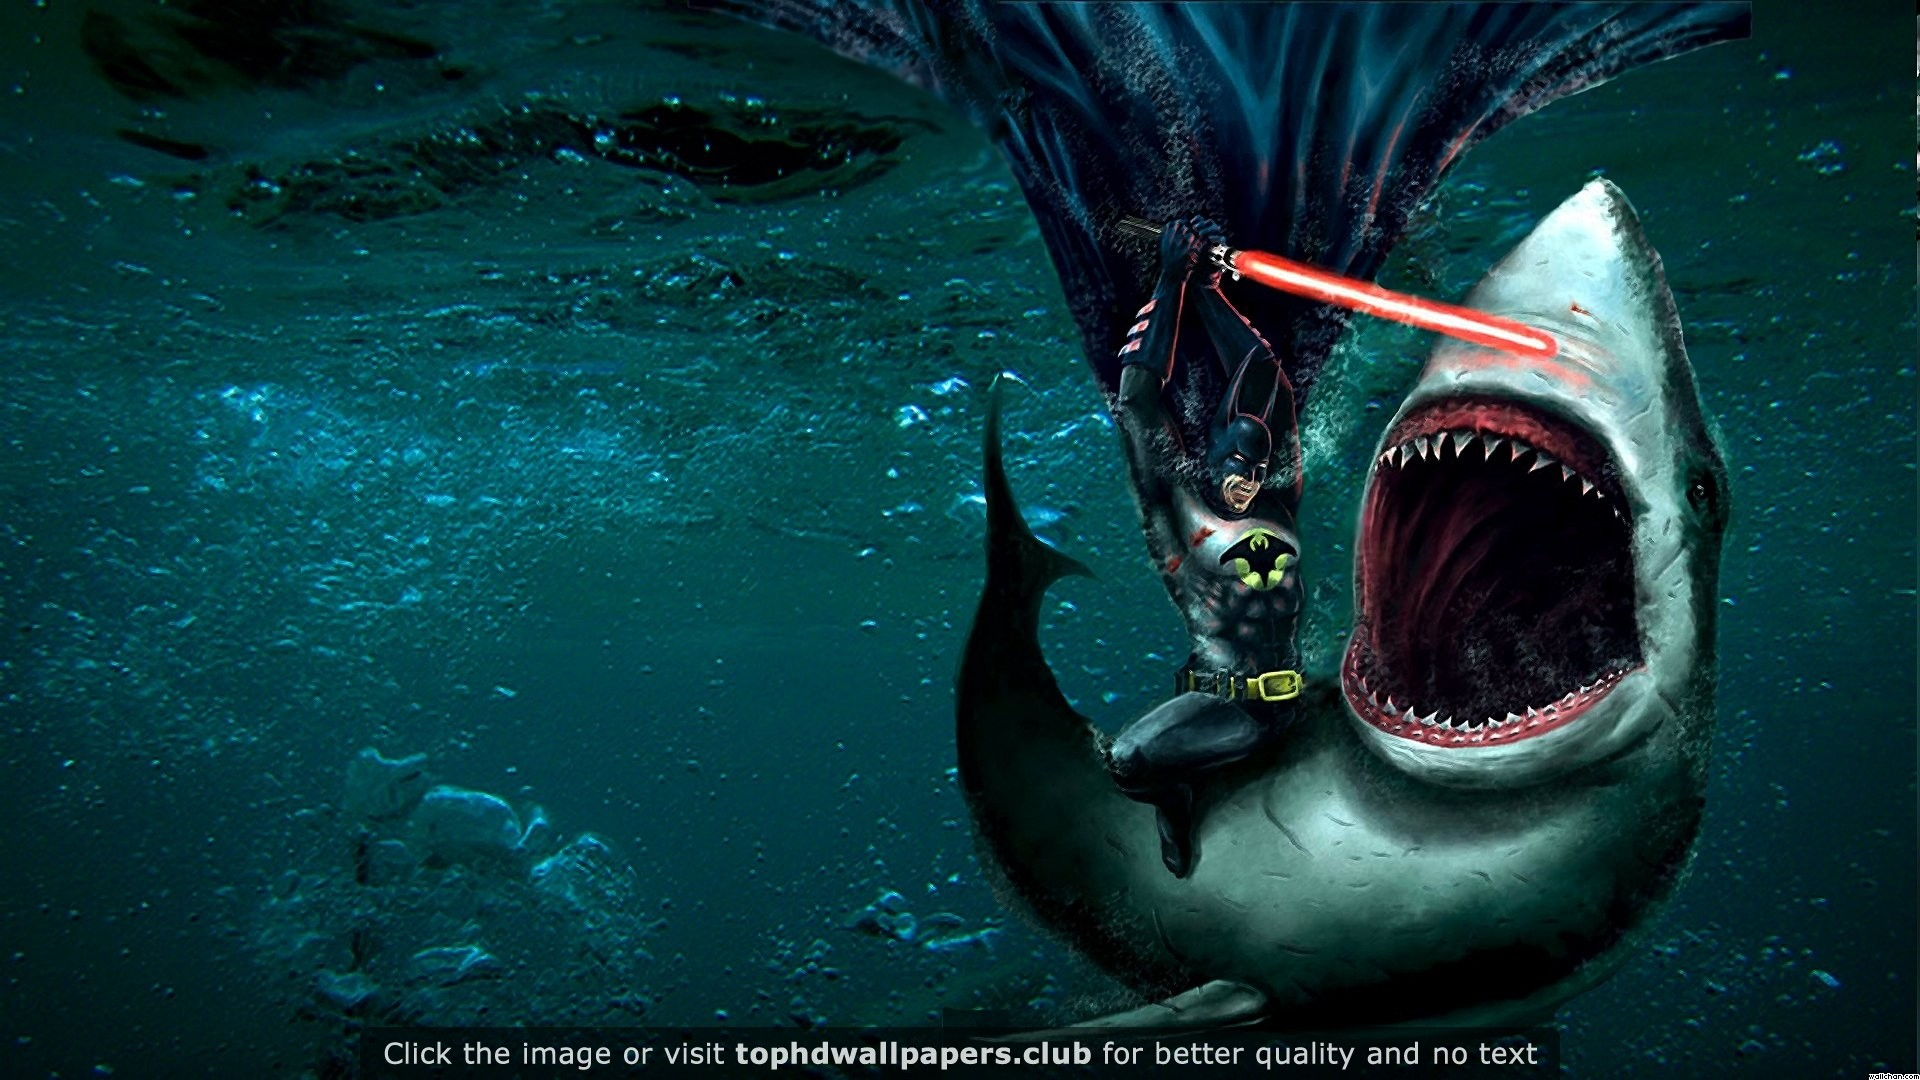 Batman Fighting a Shark With a Lightsaber 4K or HD wallpaper for your PC,  Mac